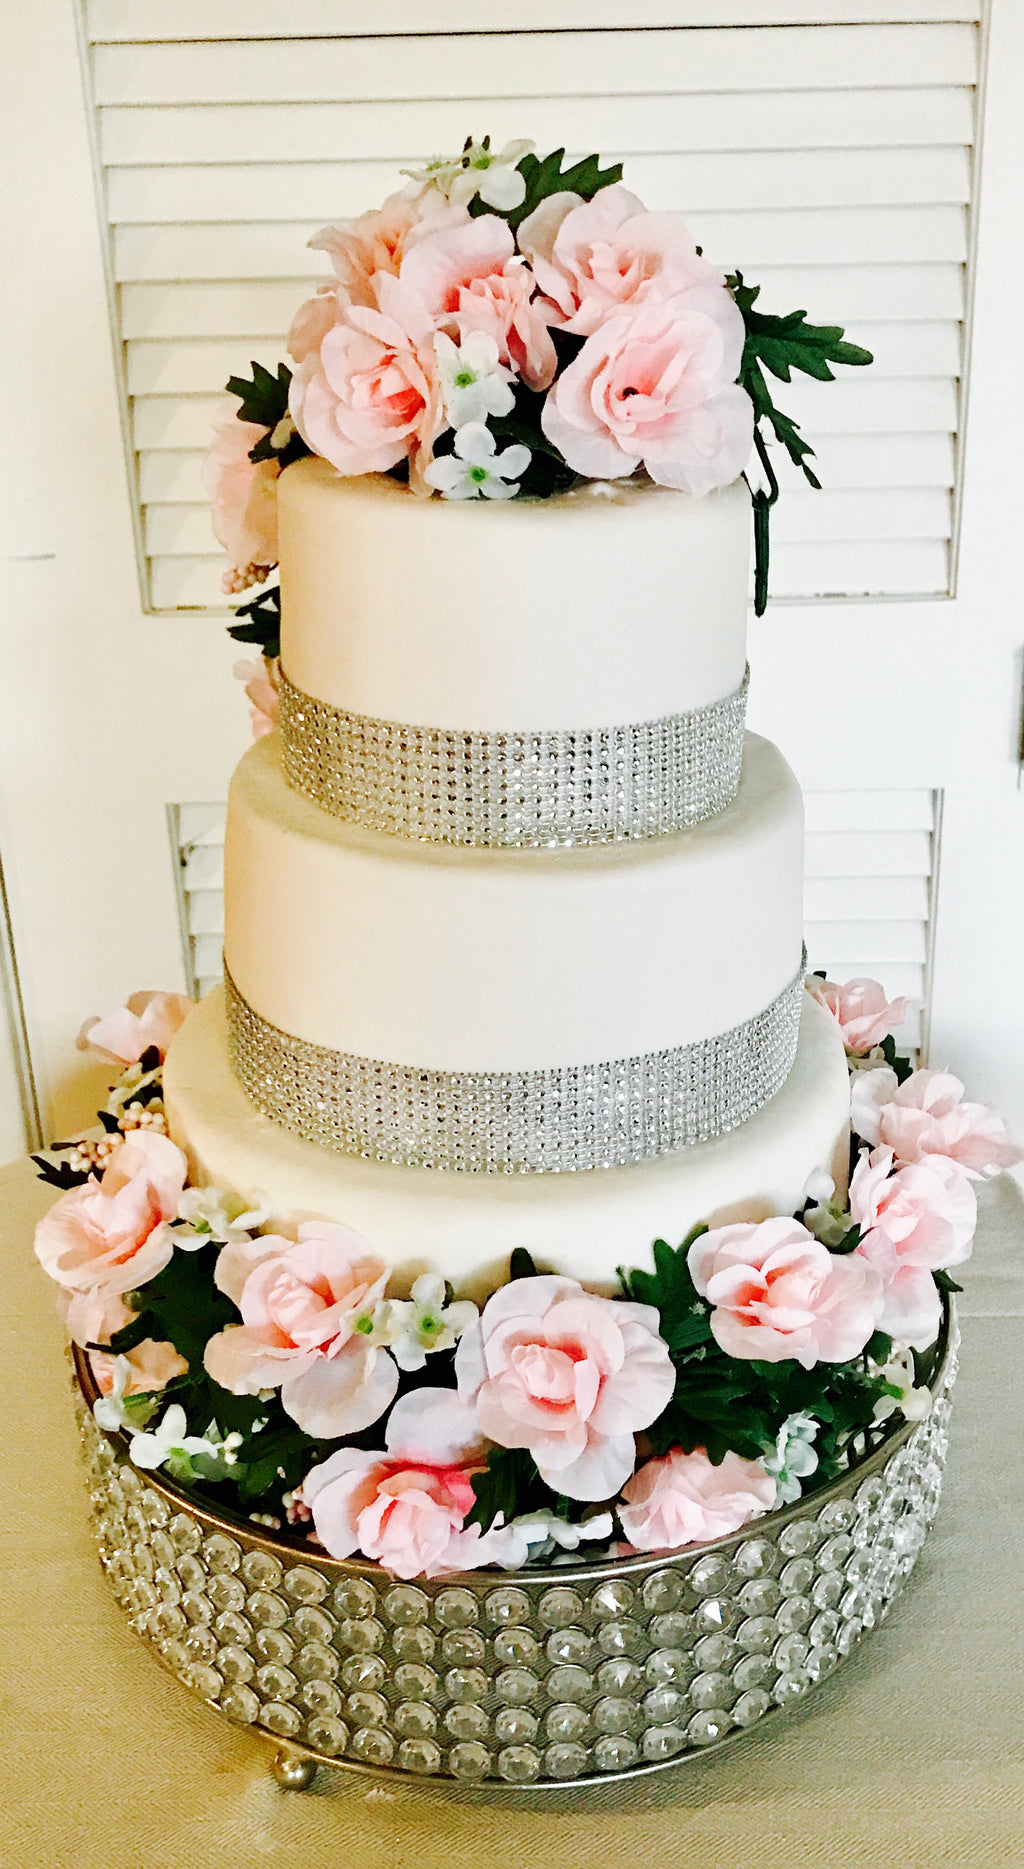 WEDDING CAKE RHINESTONES & FLOWERS